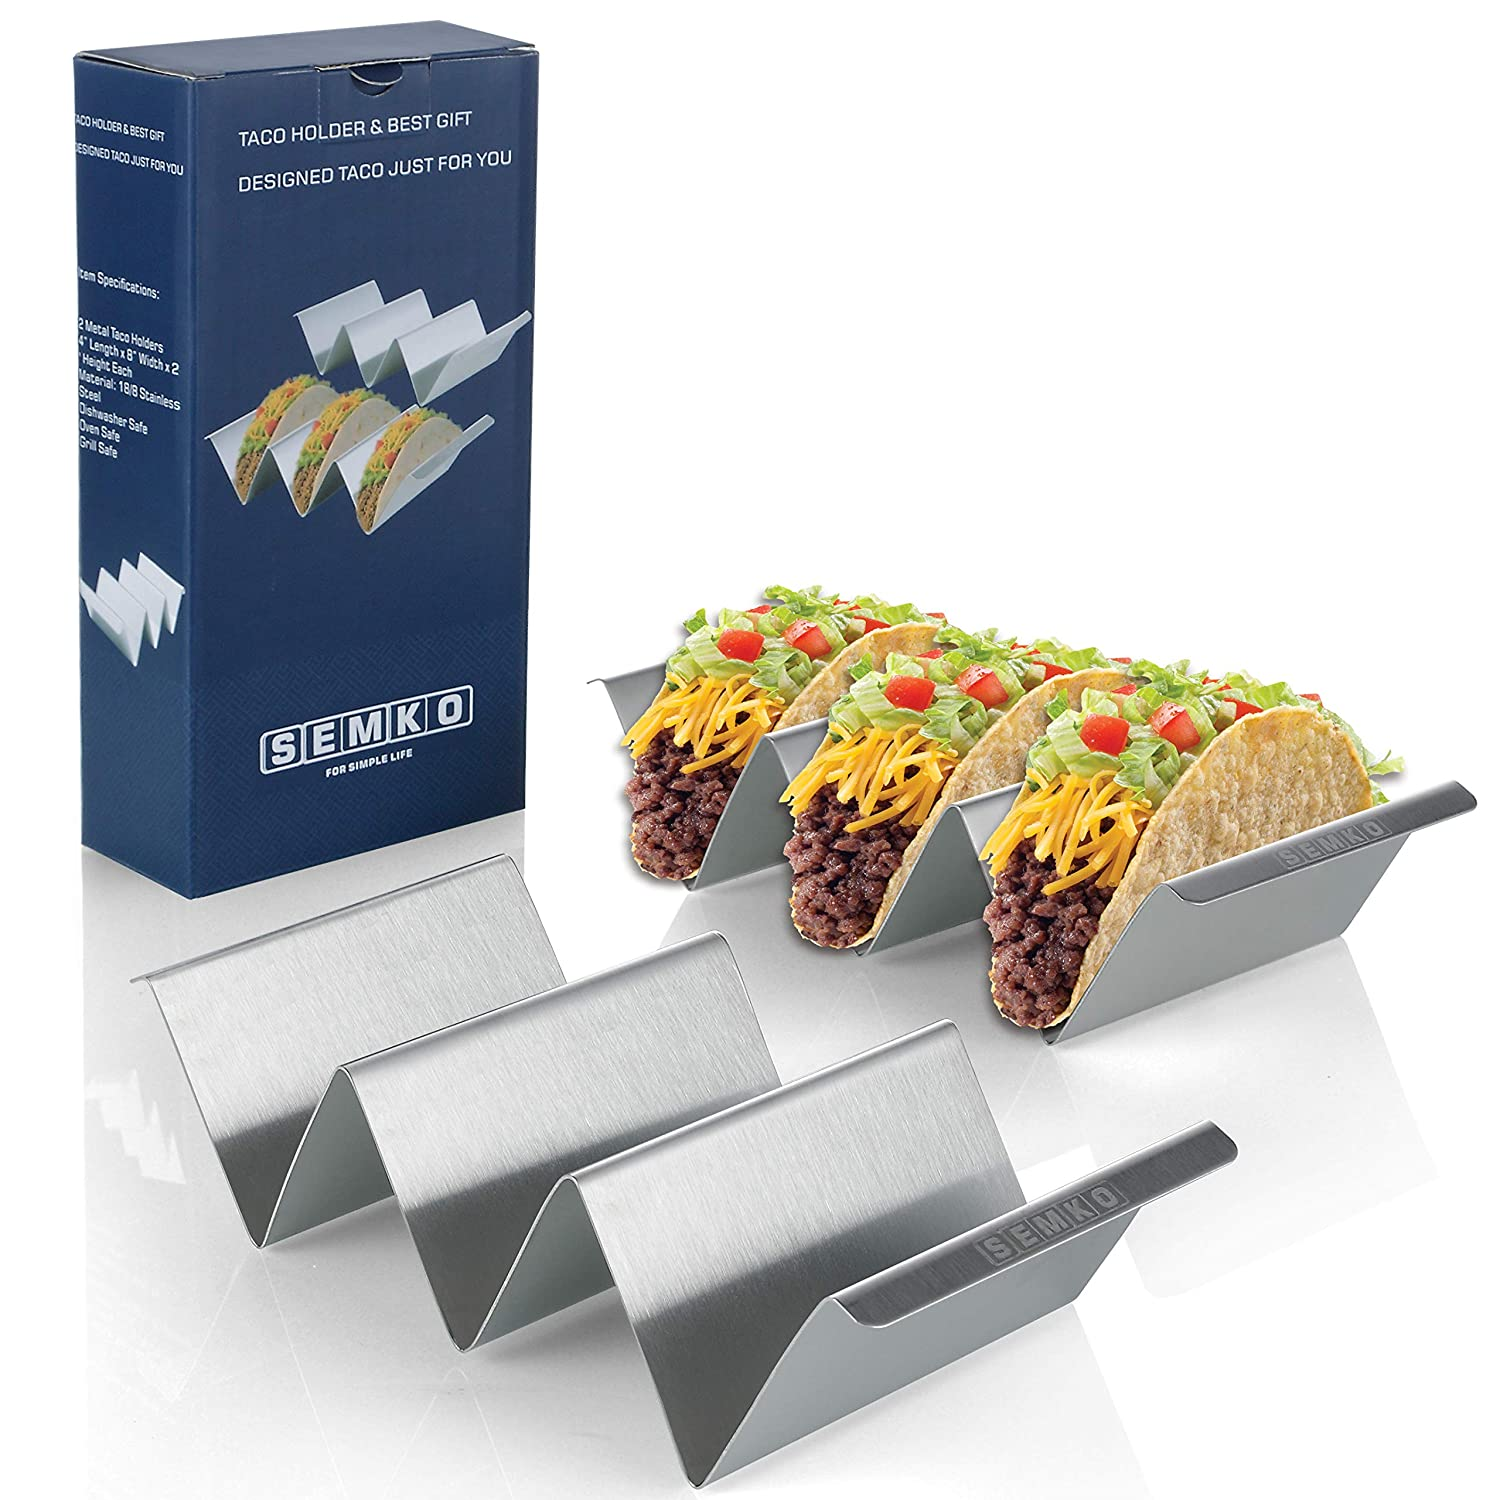 Taco Holder Stand Set of 2, Oven Grill Safe Stainless Steel Taco Tray with Side Handle, Each Rack Holds Up to 3 Tacos, Size 4'' x 8'', Dishwasher Safe, Smooth Edge